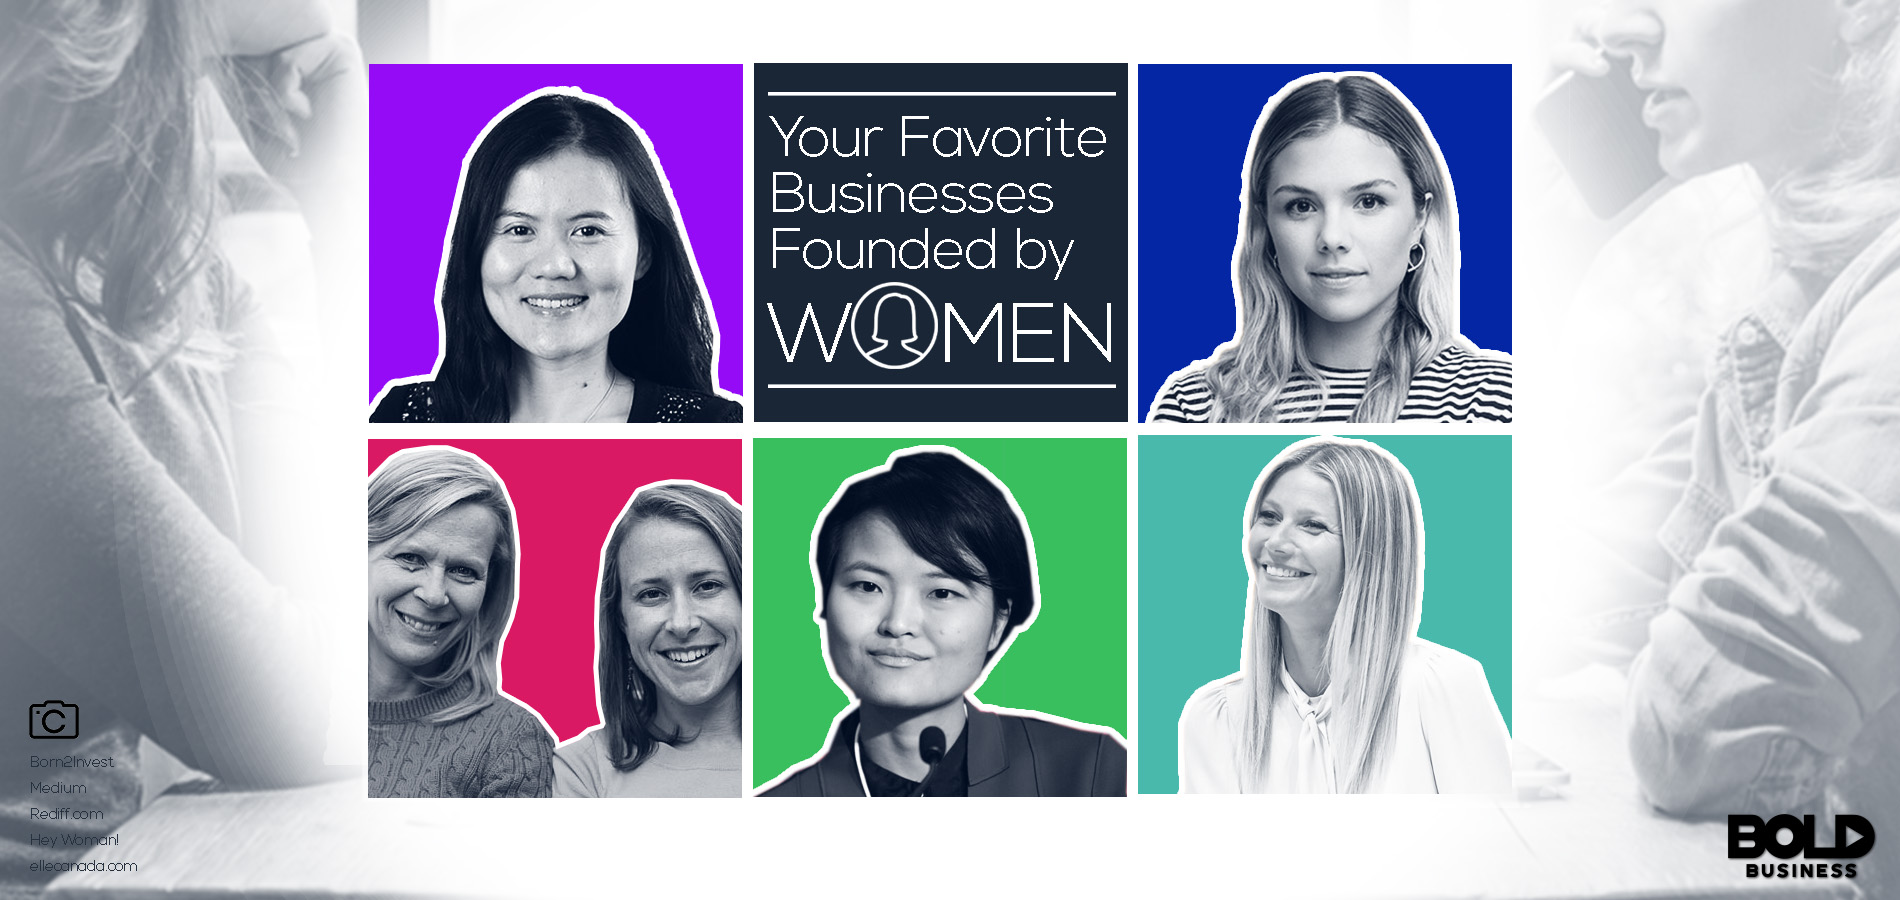 Favorite businesses founded by women and picture featuring 5 of the 20 founders